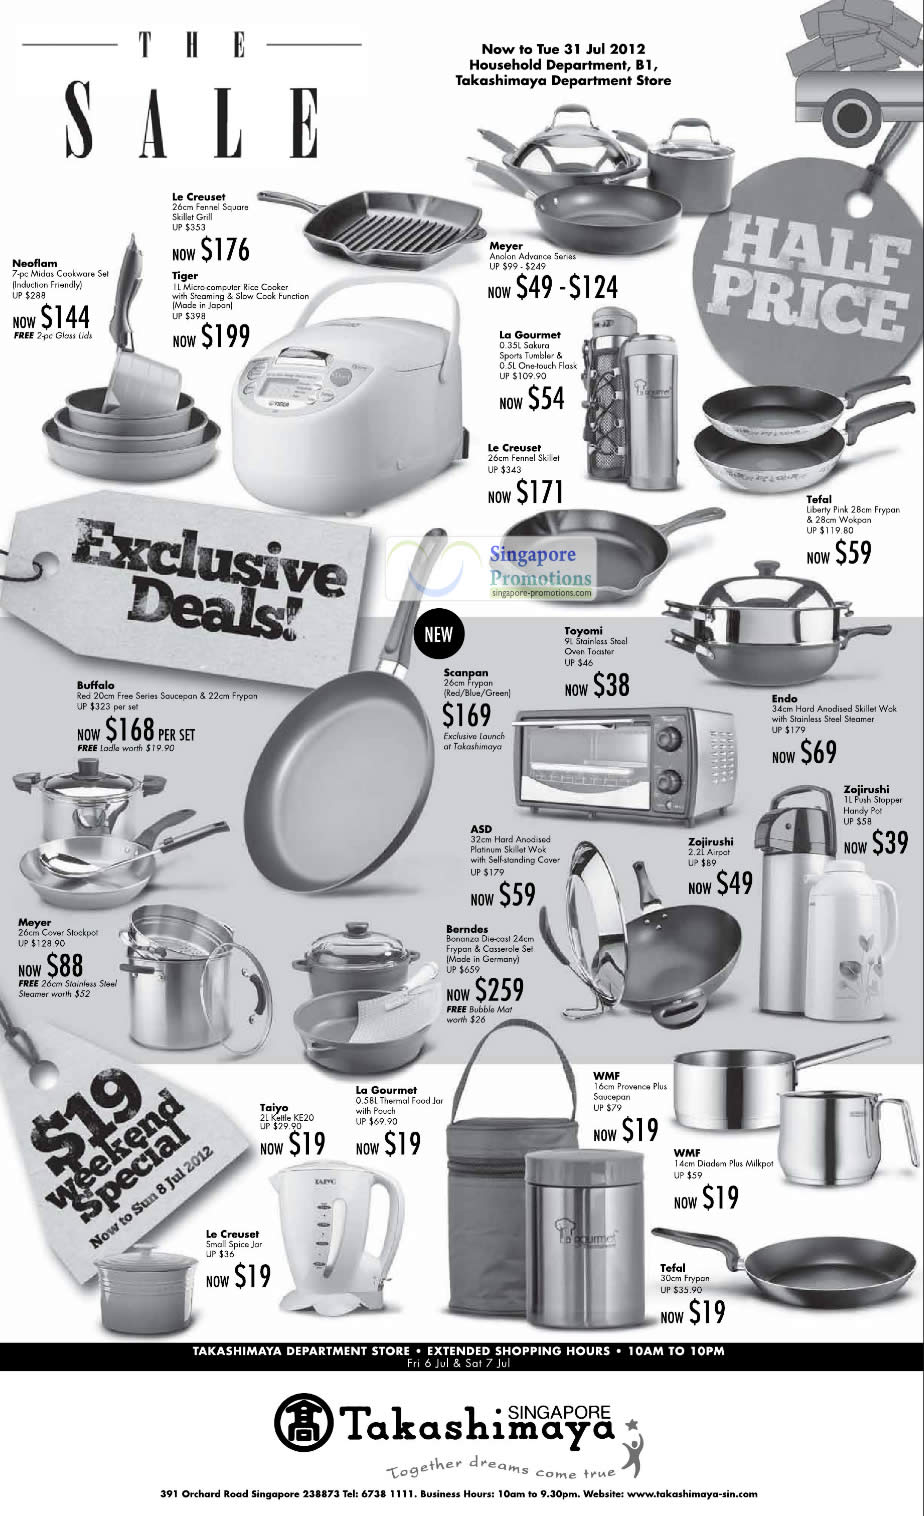 Takashimaya Kitchenware 6 Jul 2012